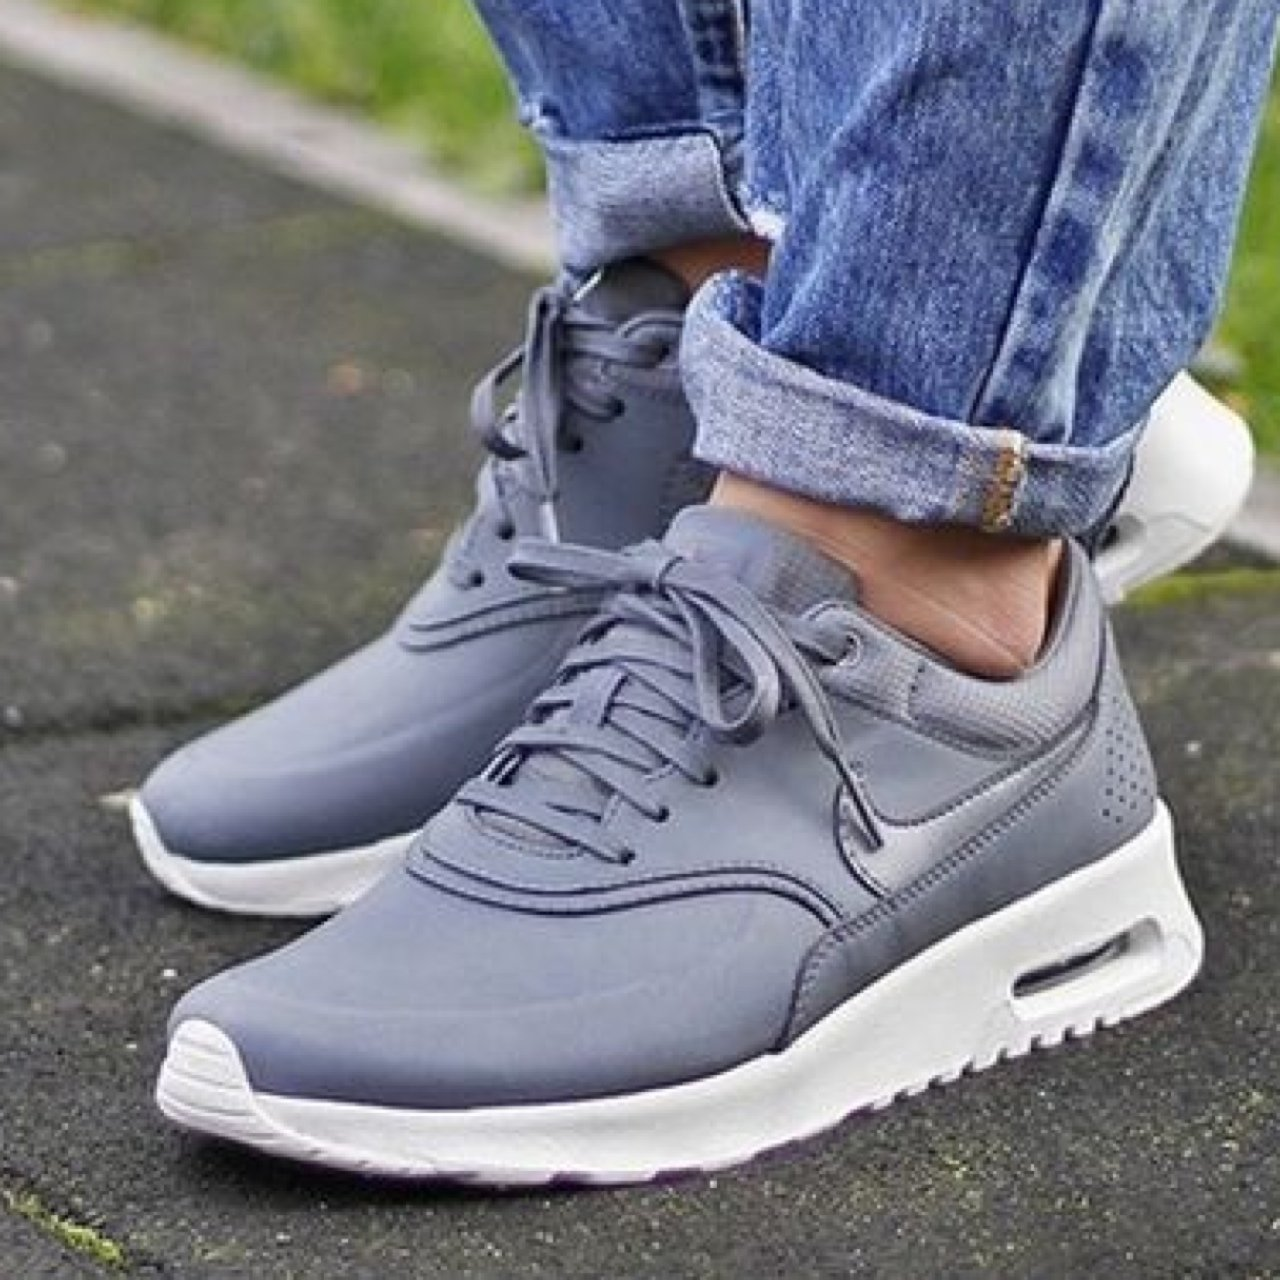 liveworkcreate. 3 years ago. United States. Nike Air Max Thea Premium  Leather Cool Grey ... 970d705b713